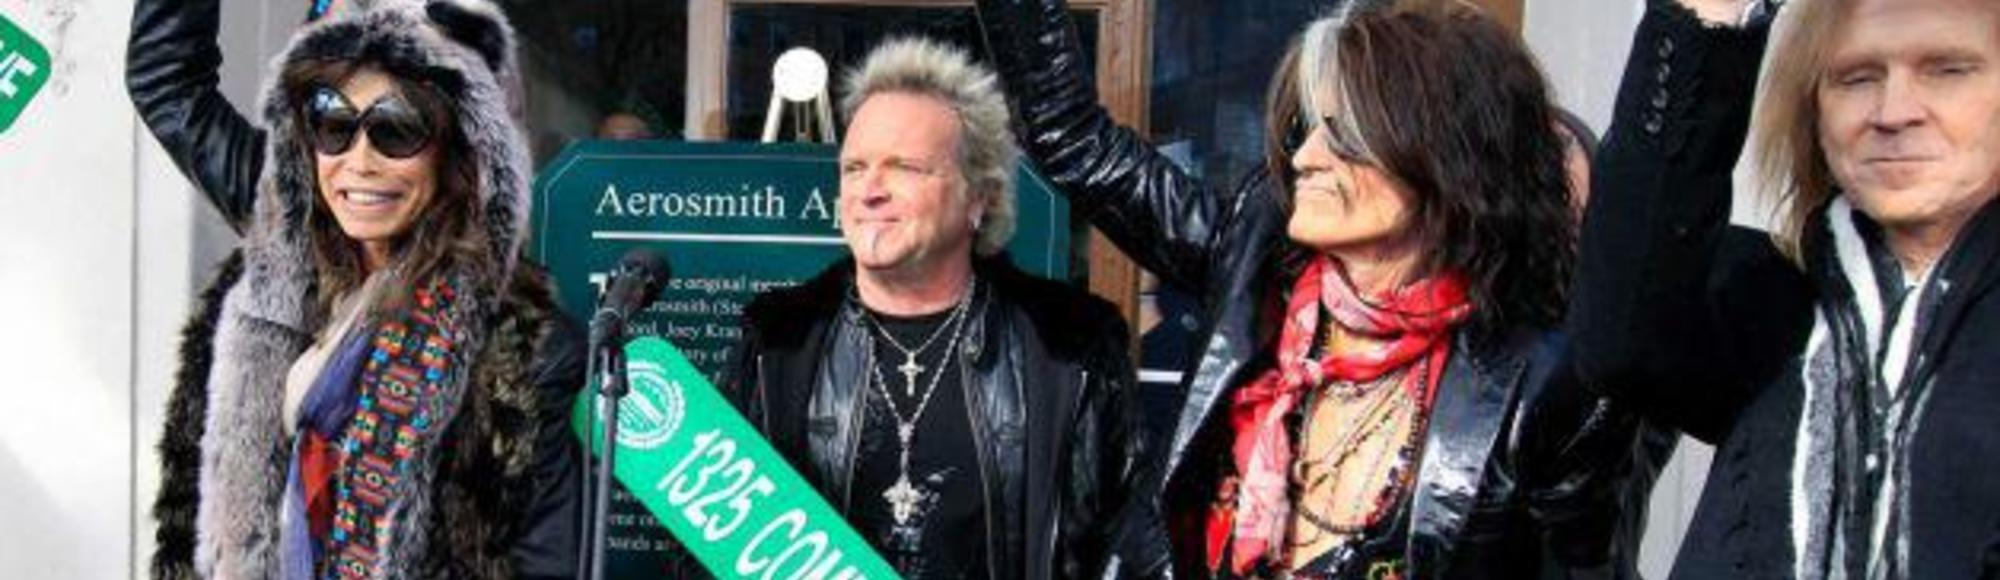 No One Was Sober at a Monday Afternoon Outdoor Aerosmith Show